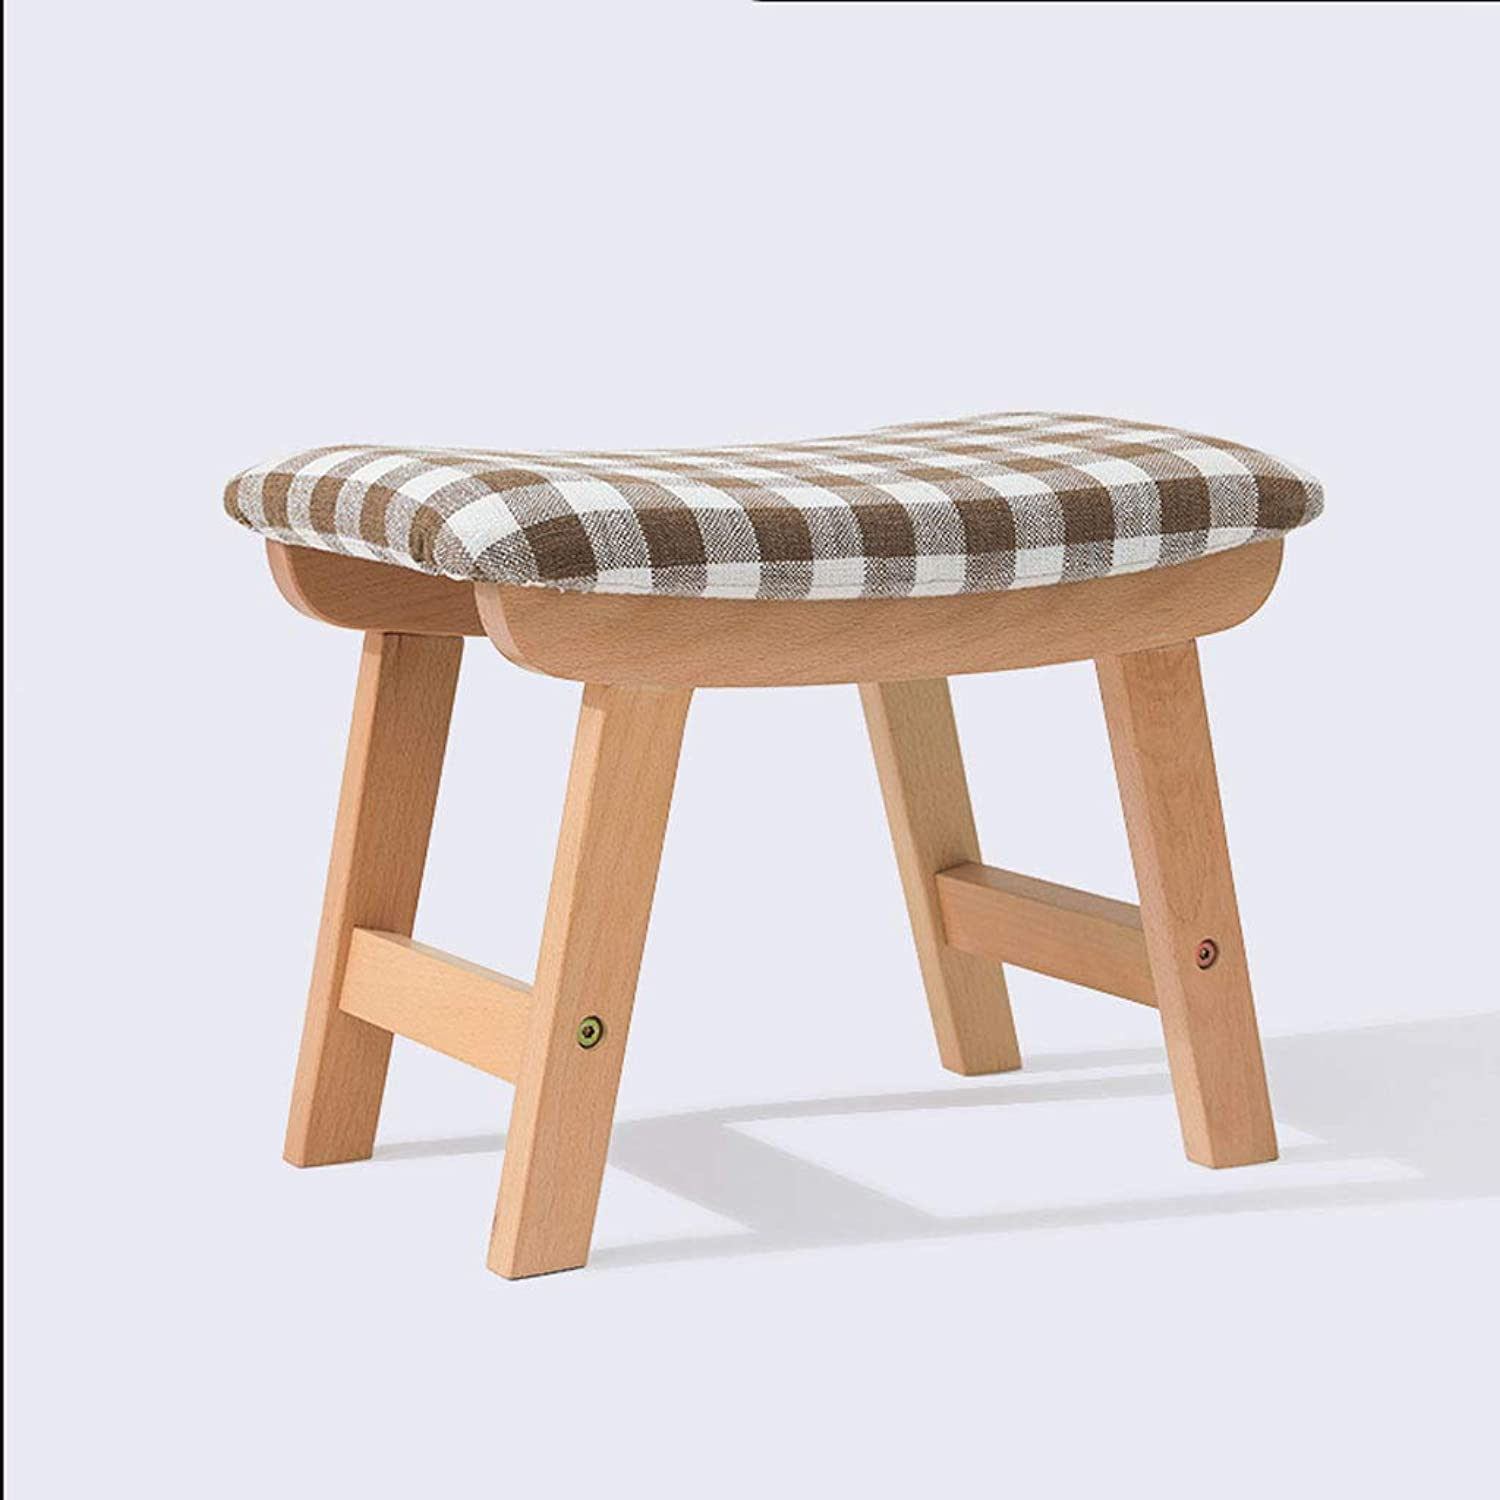 LPD Brands Low Stool Change shoes Bench Solid Wood Chair Cloth Footstool Seat Sofa Stool Small Bench (color   Style)